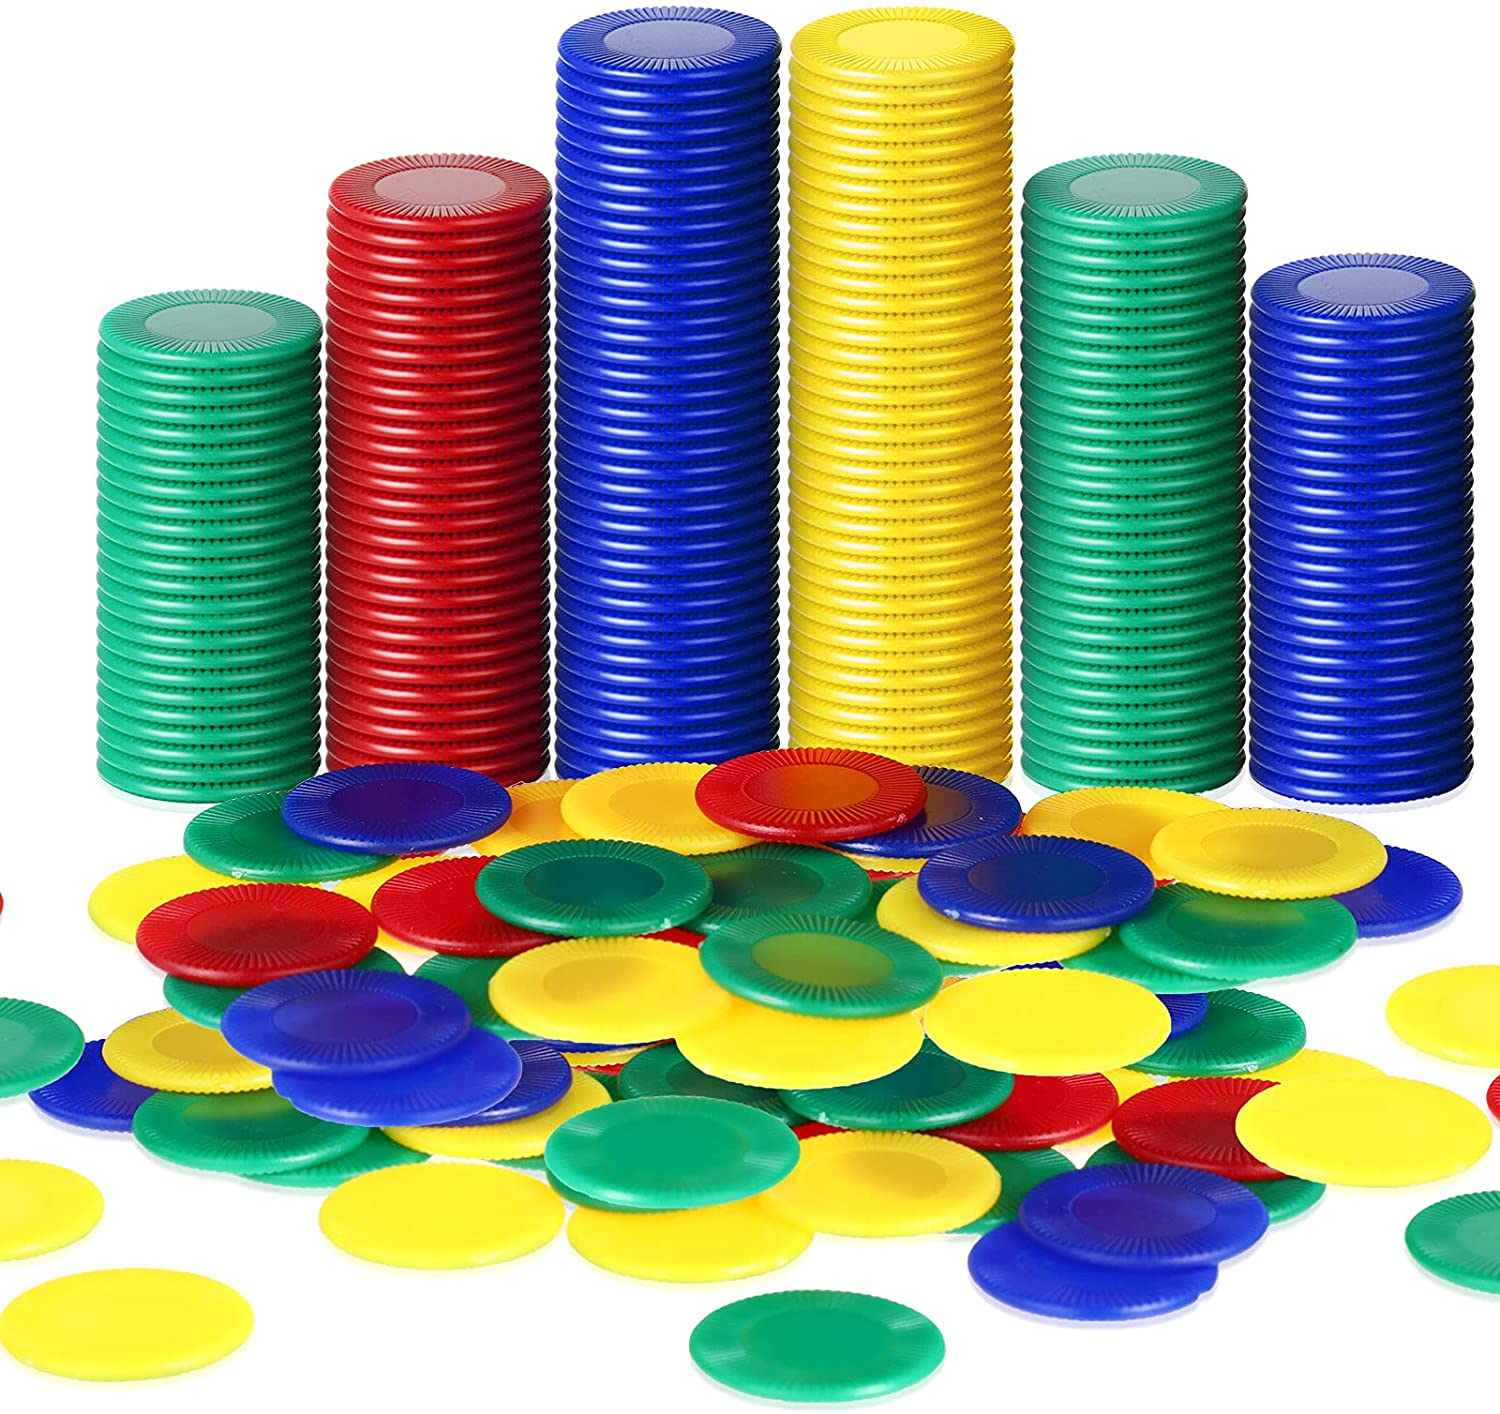 Skylety 400 Pieces Plastic Poker Count 35% OFF Chips New sales Colors Game 4